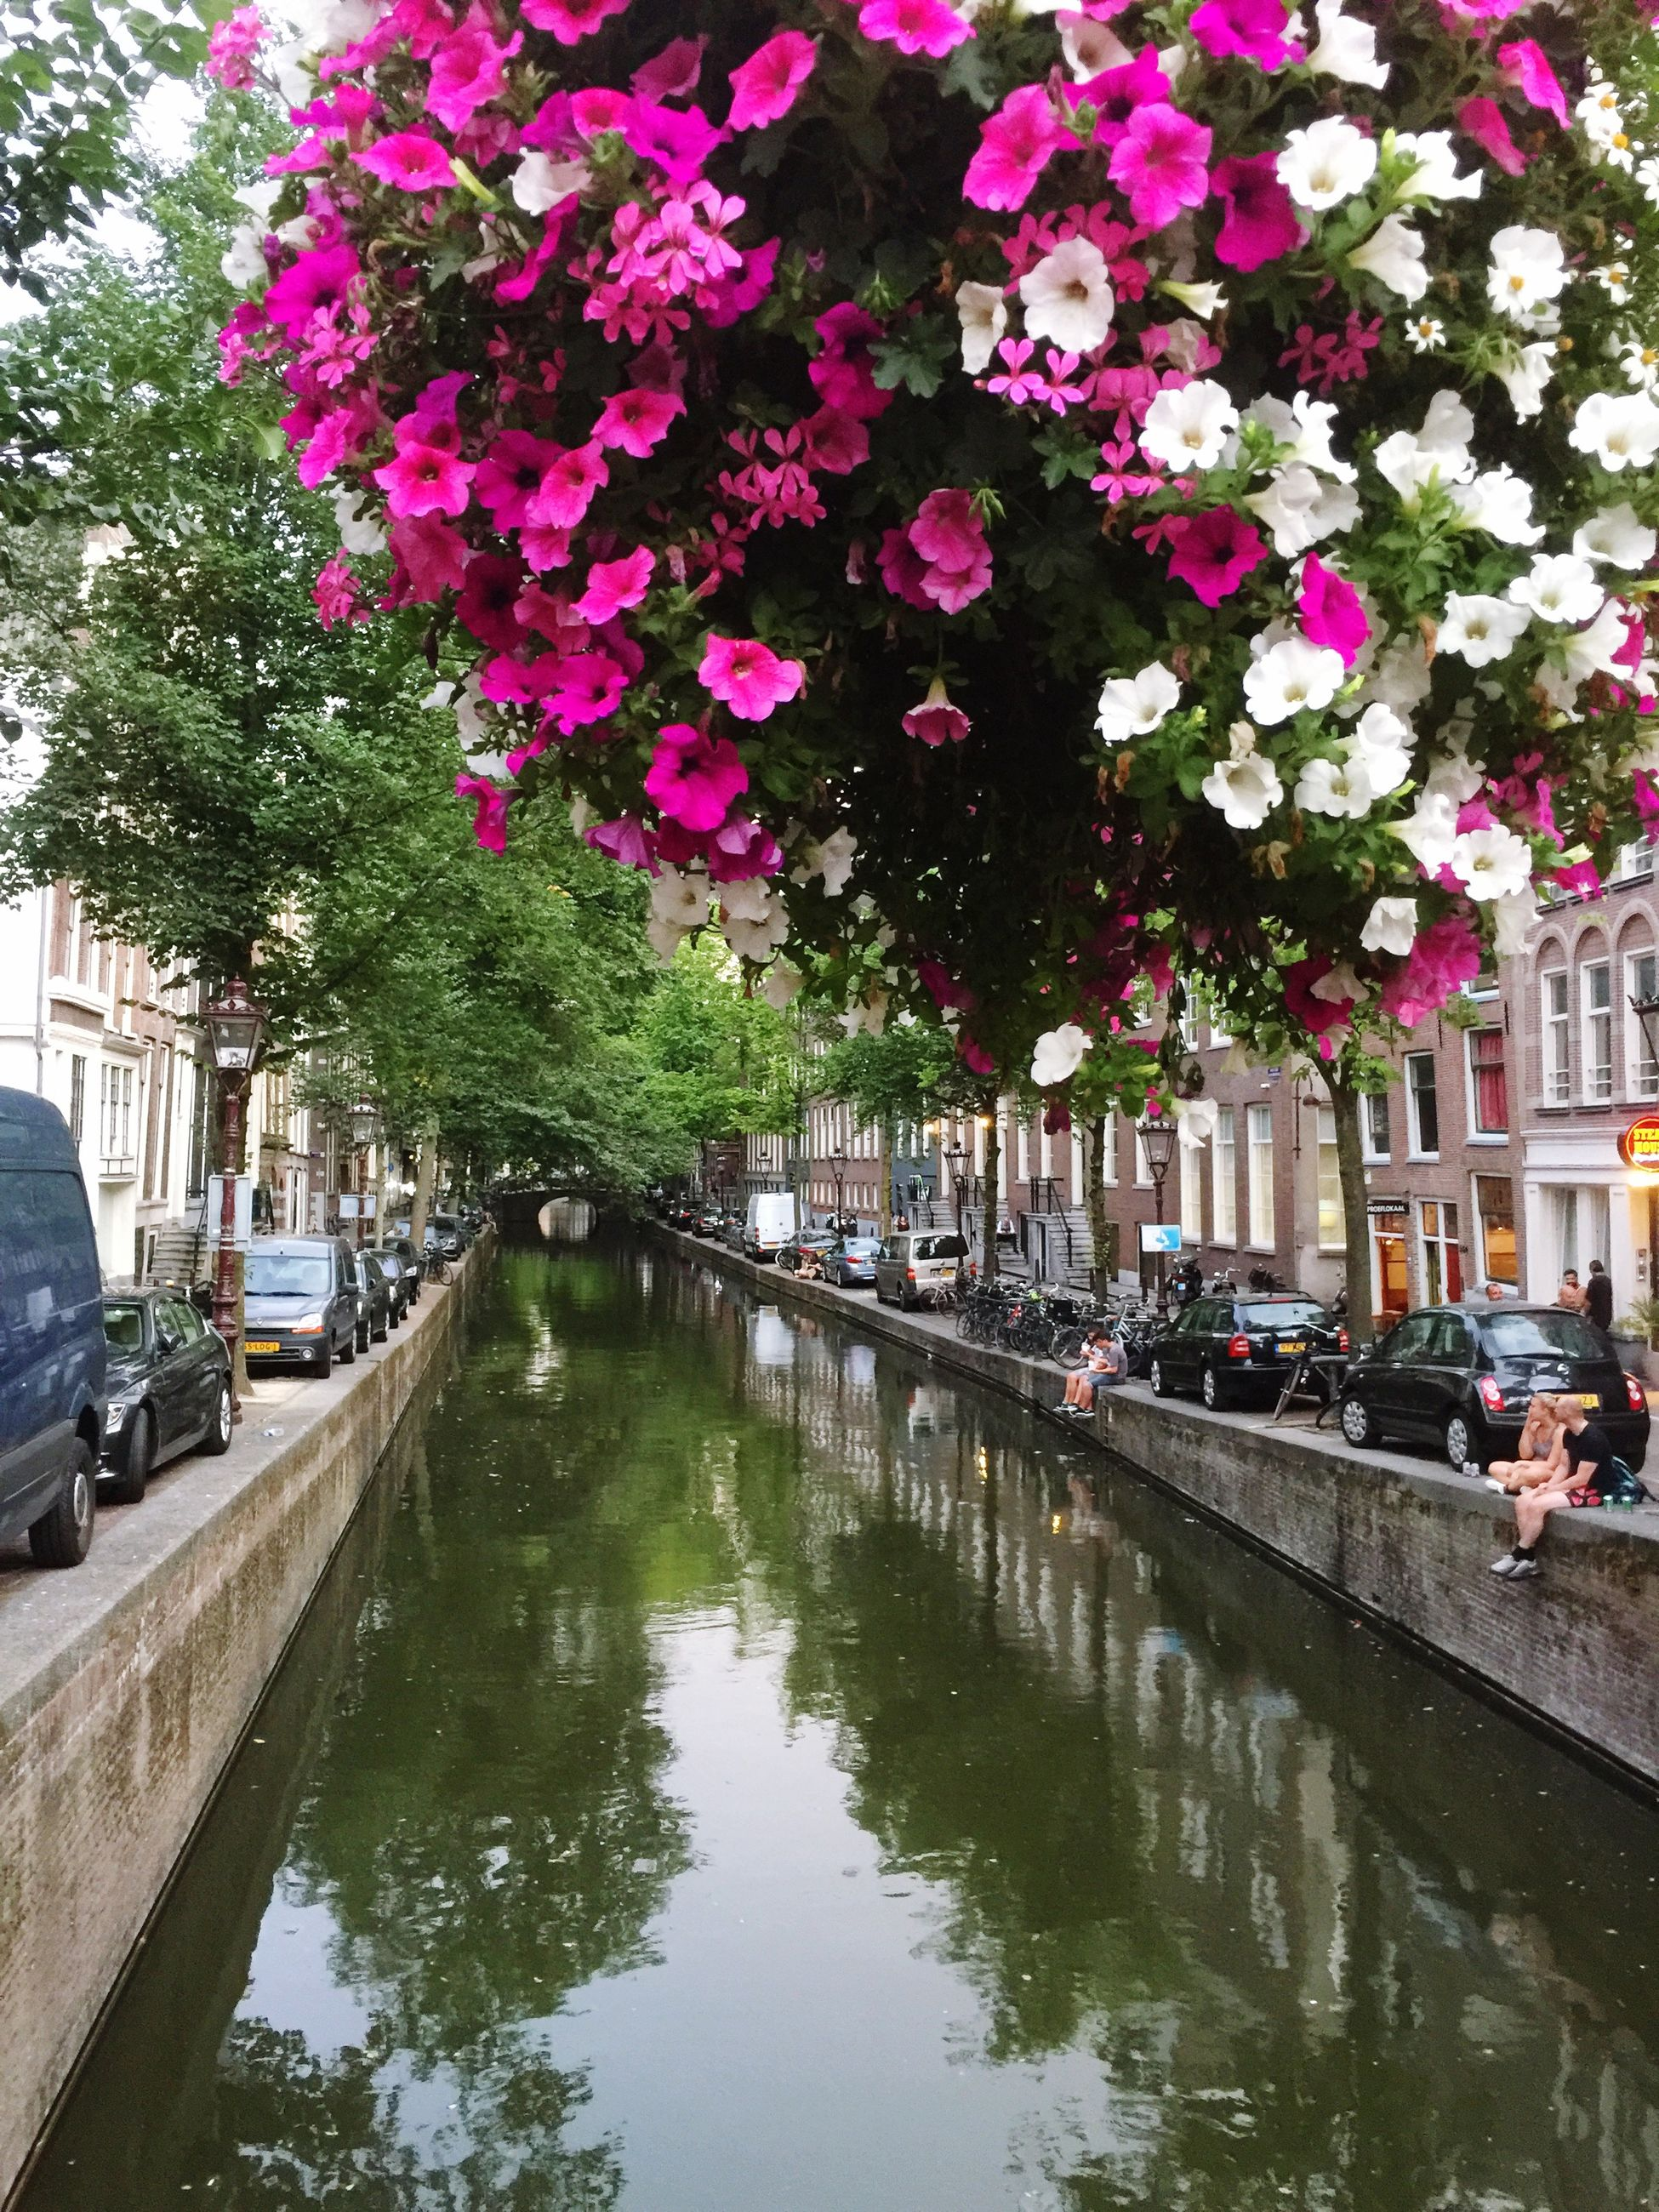 plant, water, flower, architecture, flowering plant, reflection, tree, built structure, nature, incidental people, building exterior, motor vehicle, transportation, city, mode of transportation, car, canal, day, growth, outdoors